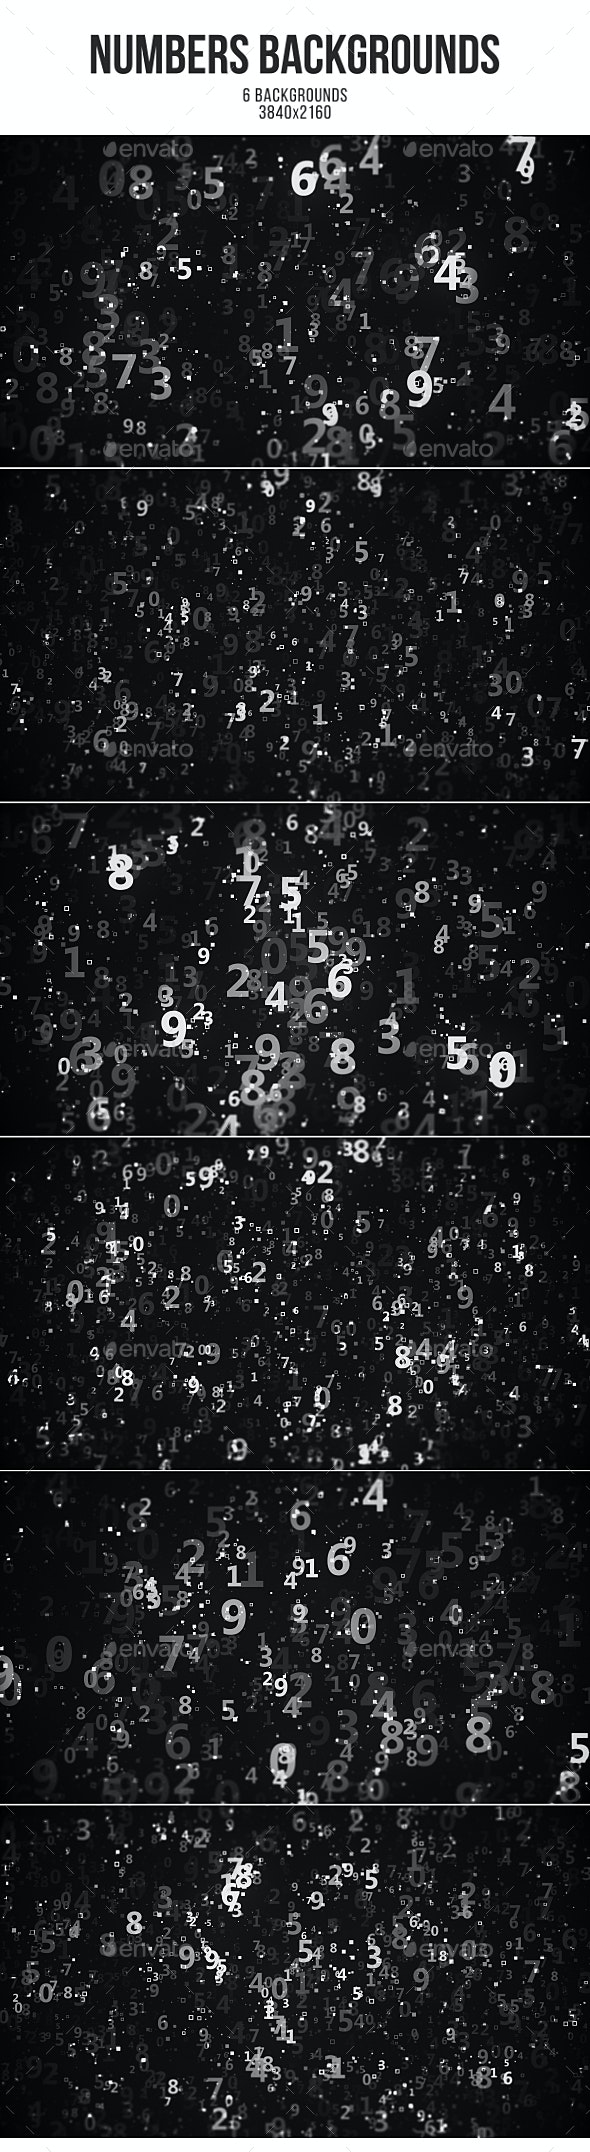 Numbers Backgrounds - Abstract Backgrounds